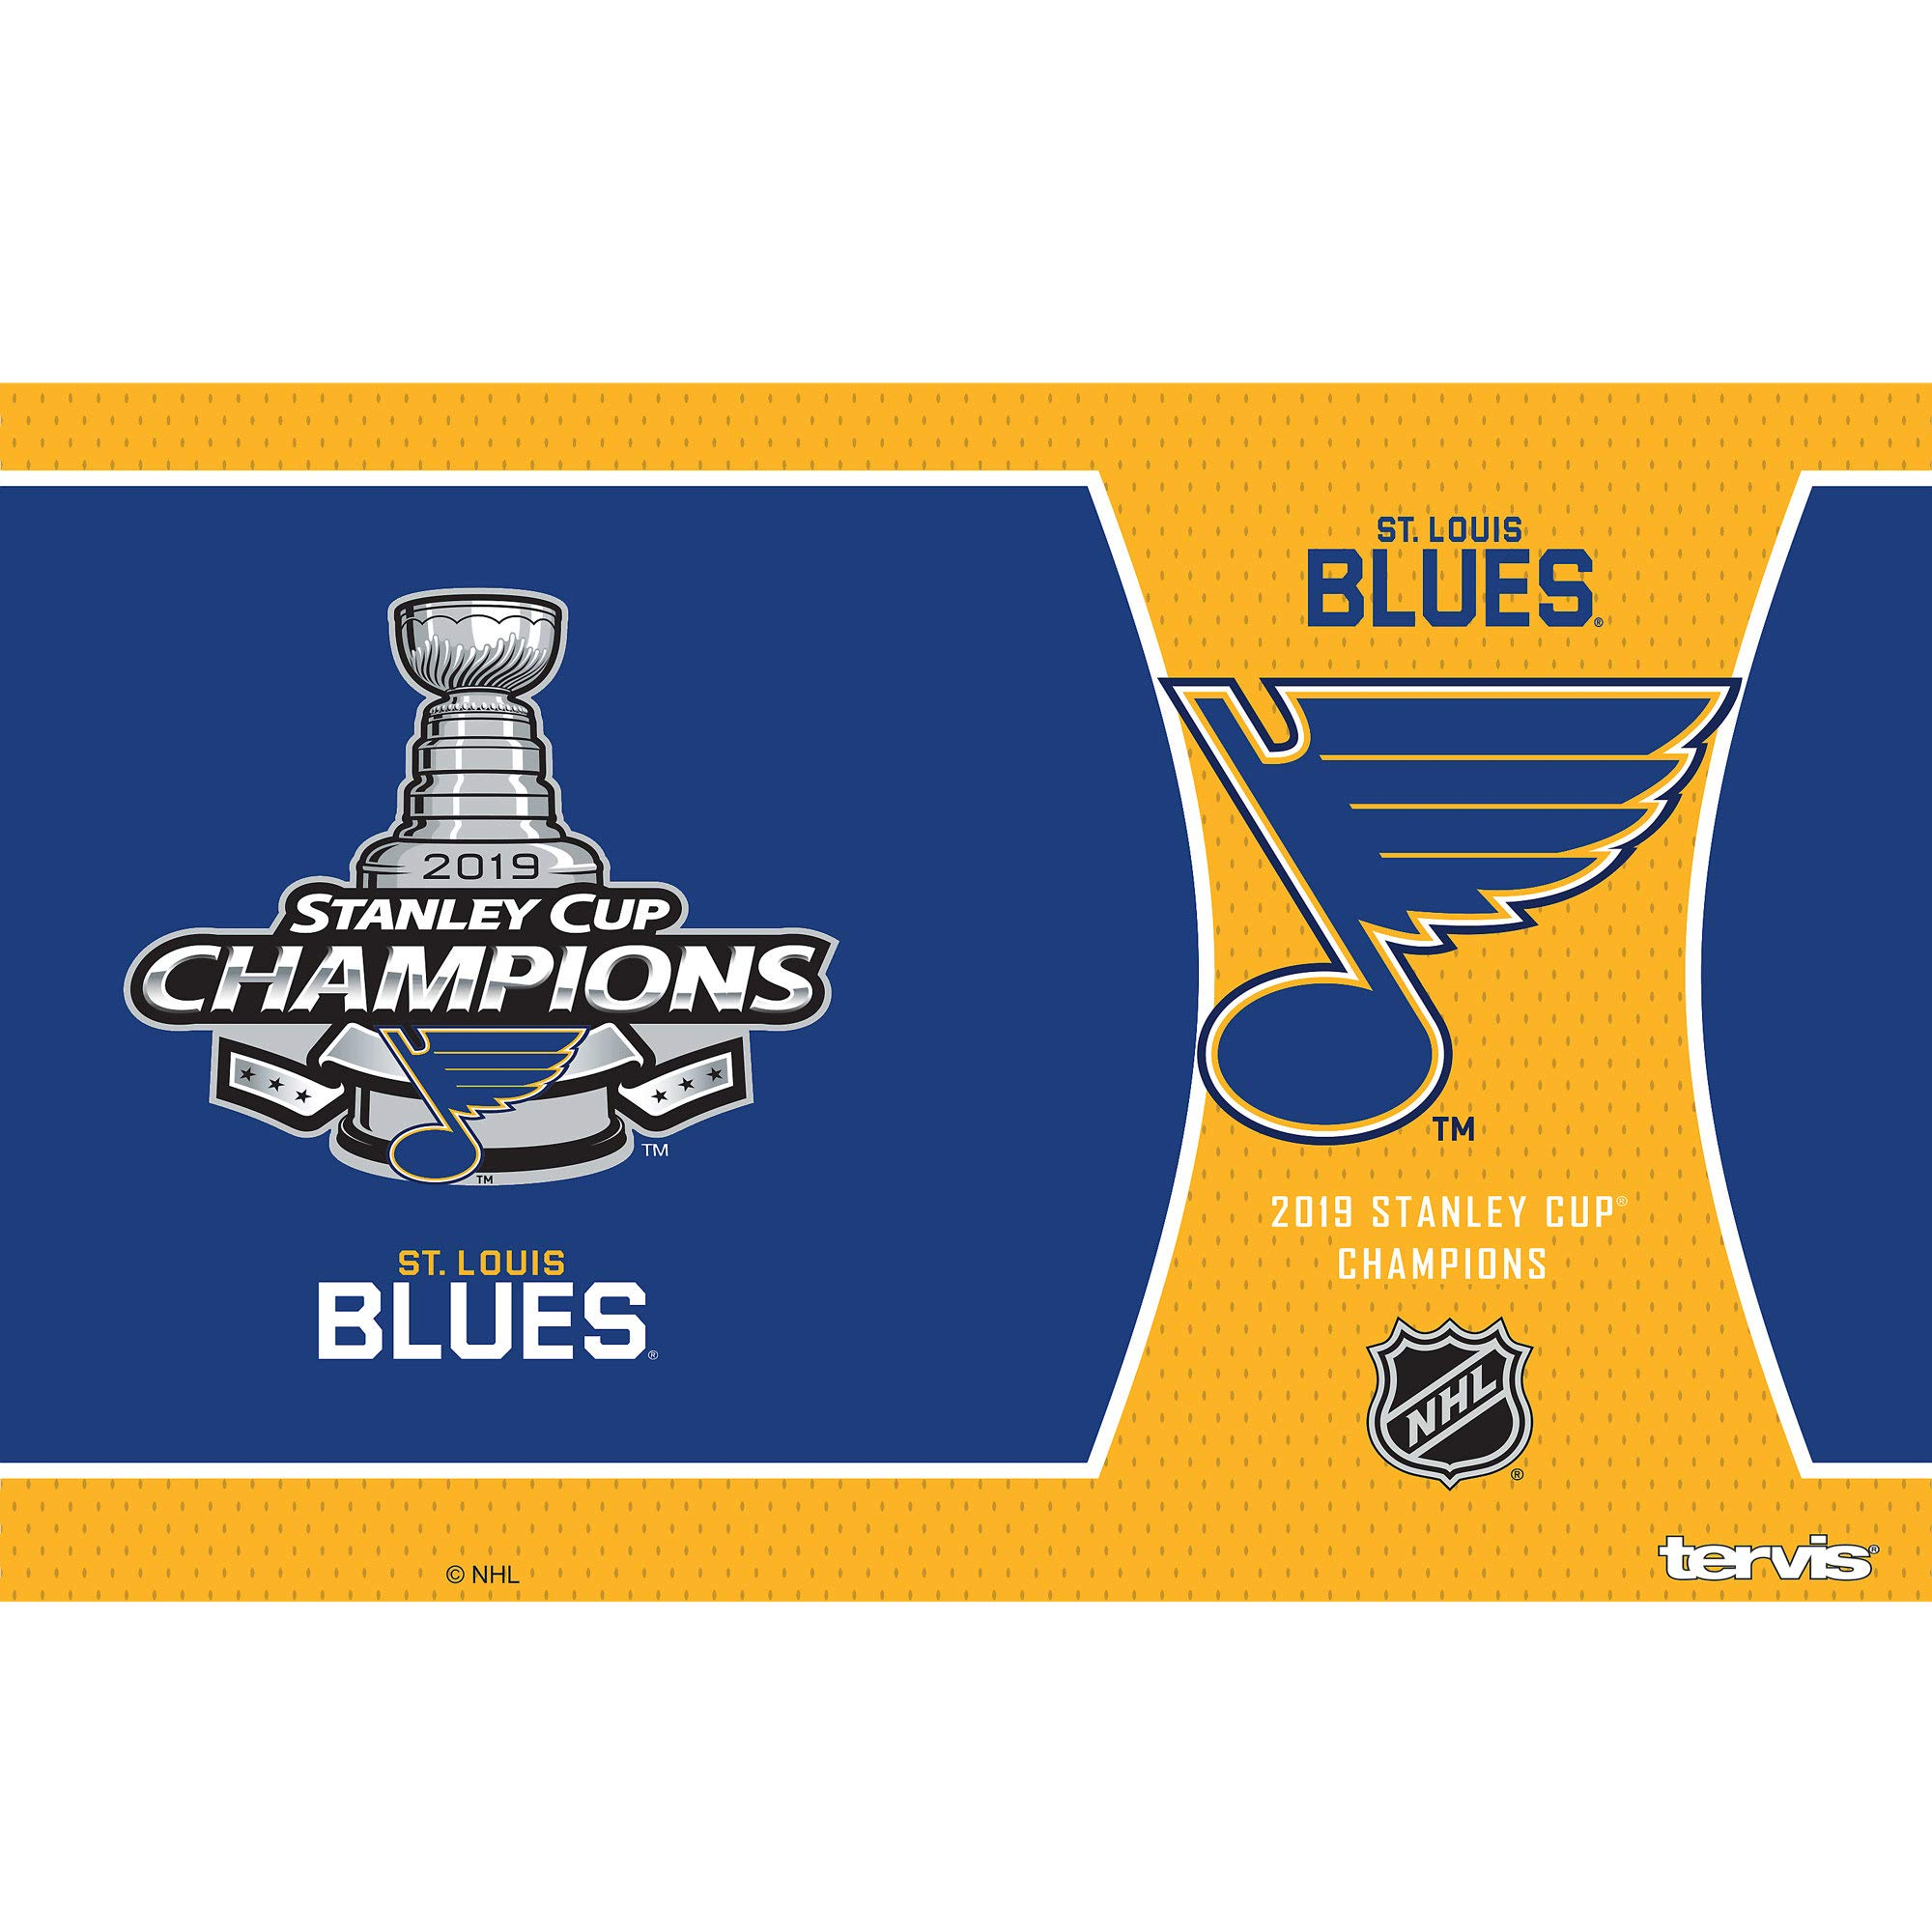 Tervis 1336027 NHL St. Louis Blues 2019 Stanley Cup Champions Stainless Steel Insulated Tumbler with Clear & Black Hammer Lid, 20 oz, Silver by Tervis (Image #2)